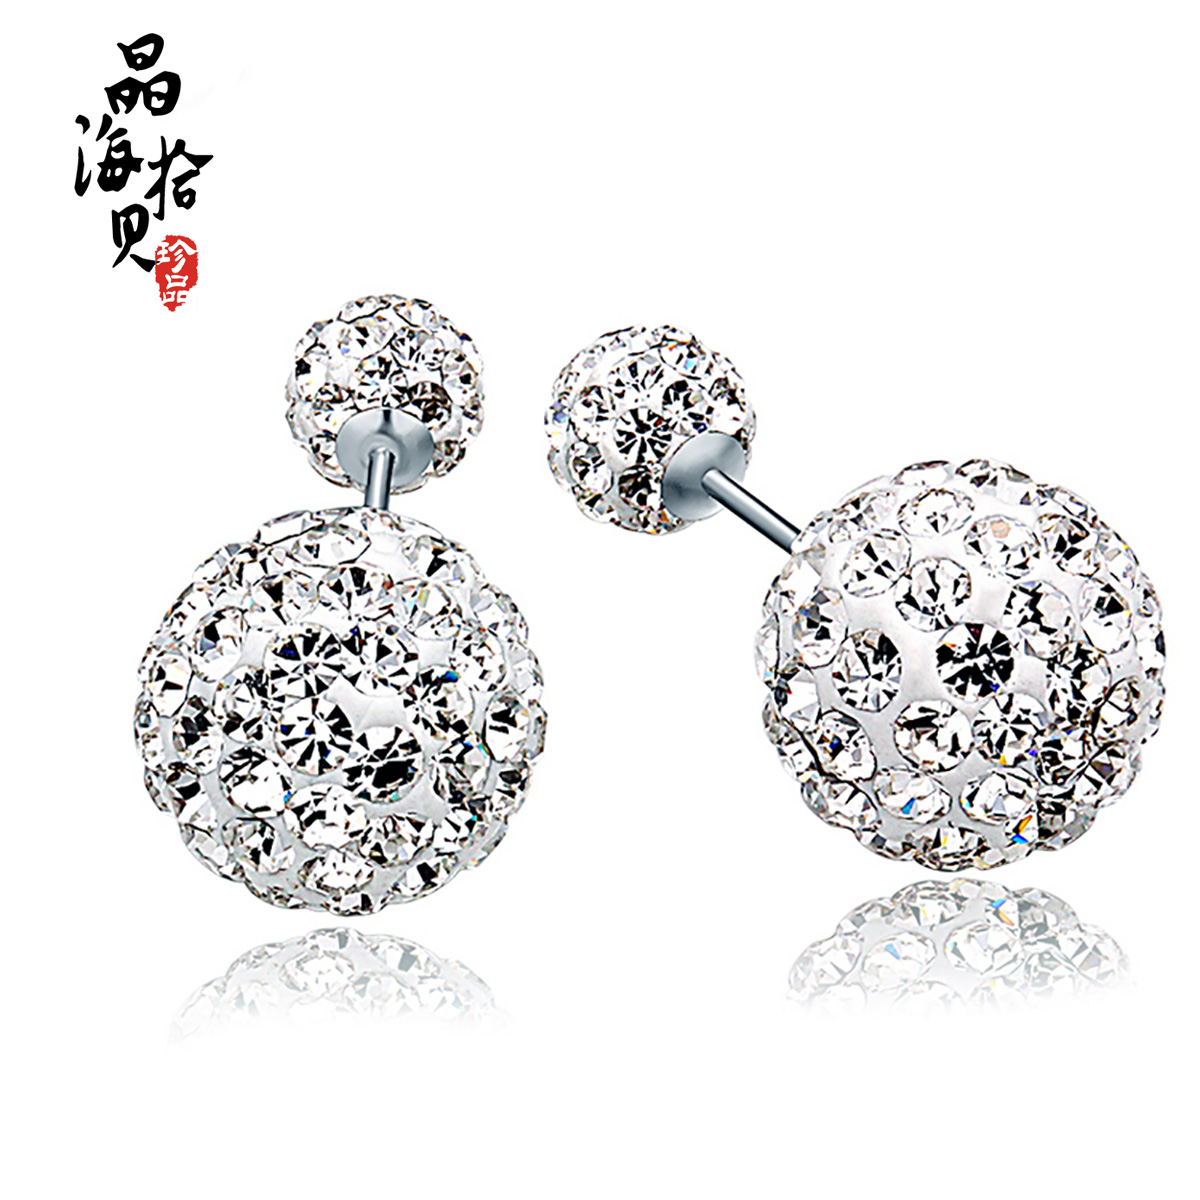 China Girls Jewelry Hypoallergenic China Girls Jewelry